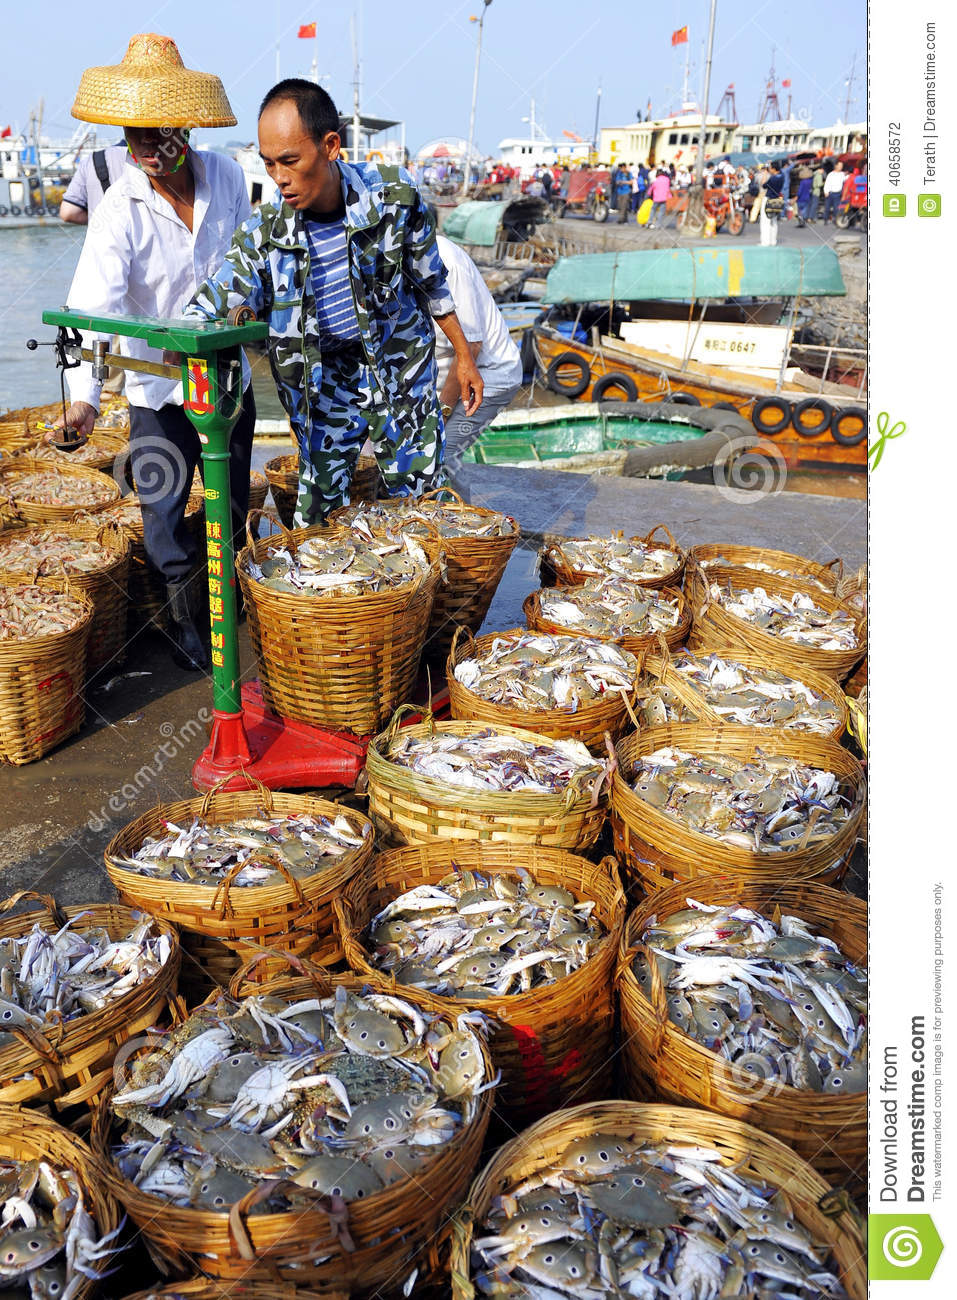 How to Start a Fish Market Business